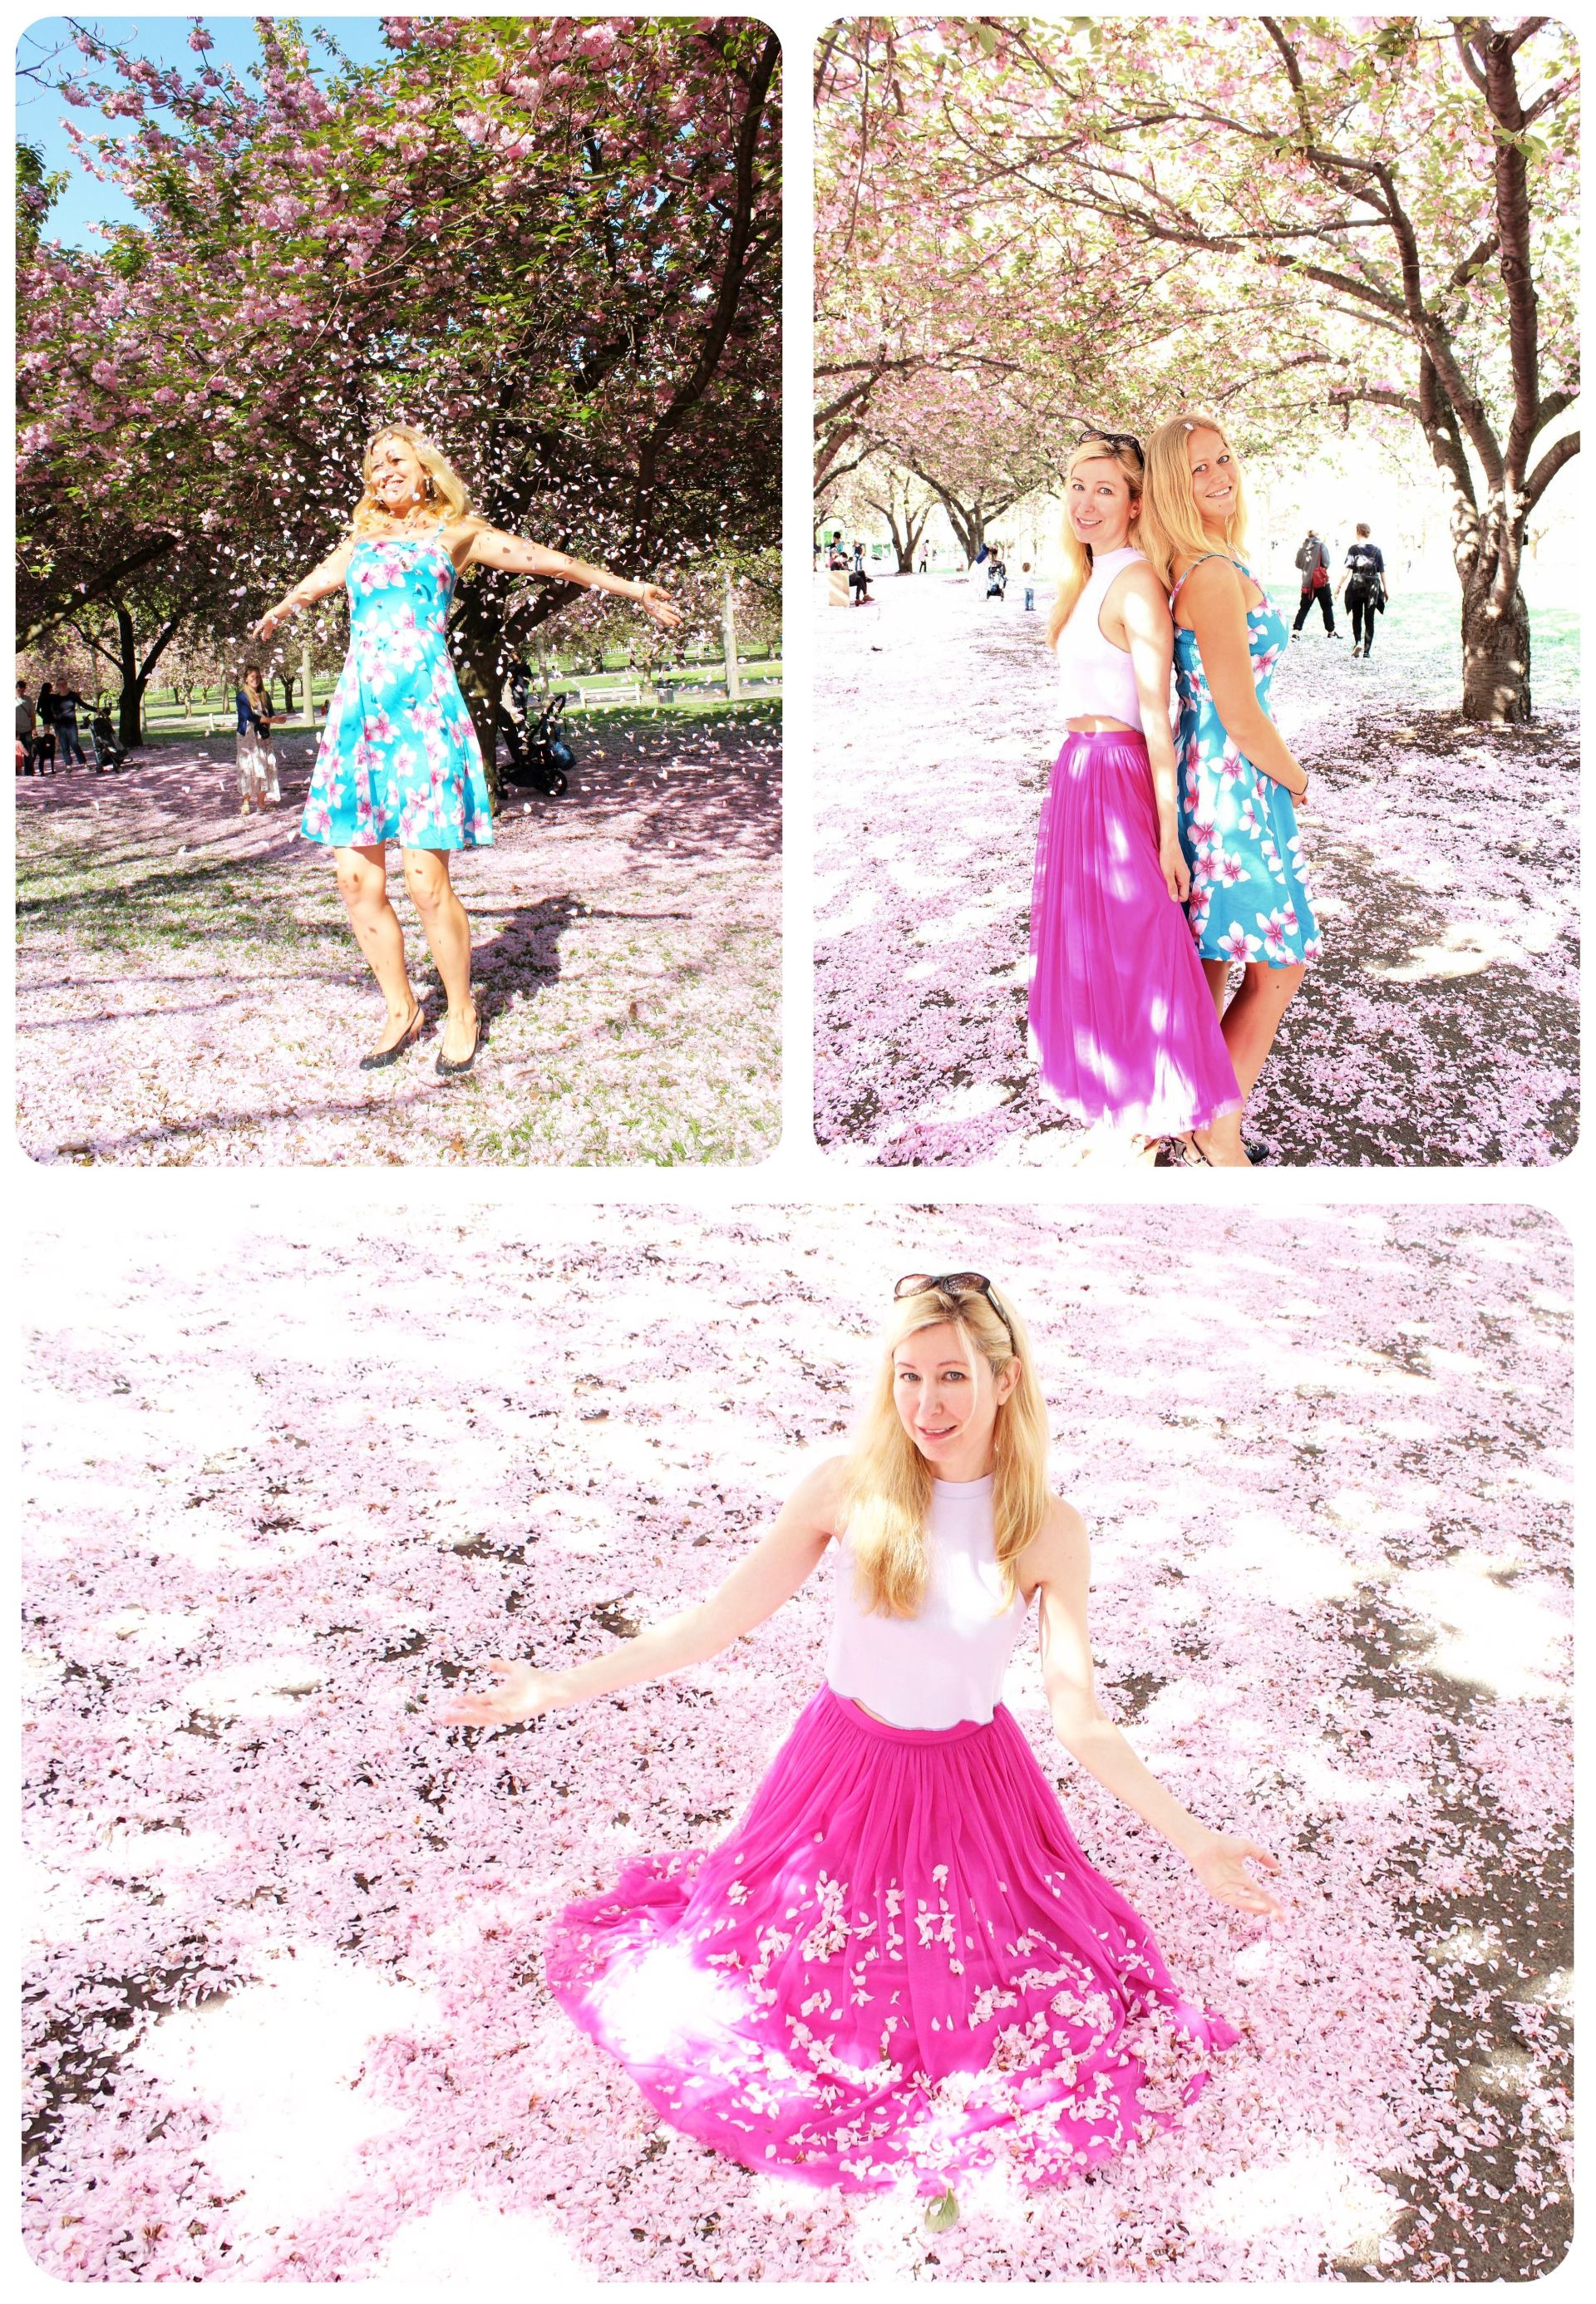 Spring blossom photo shoot